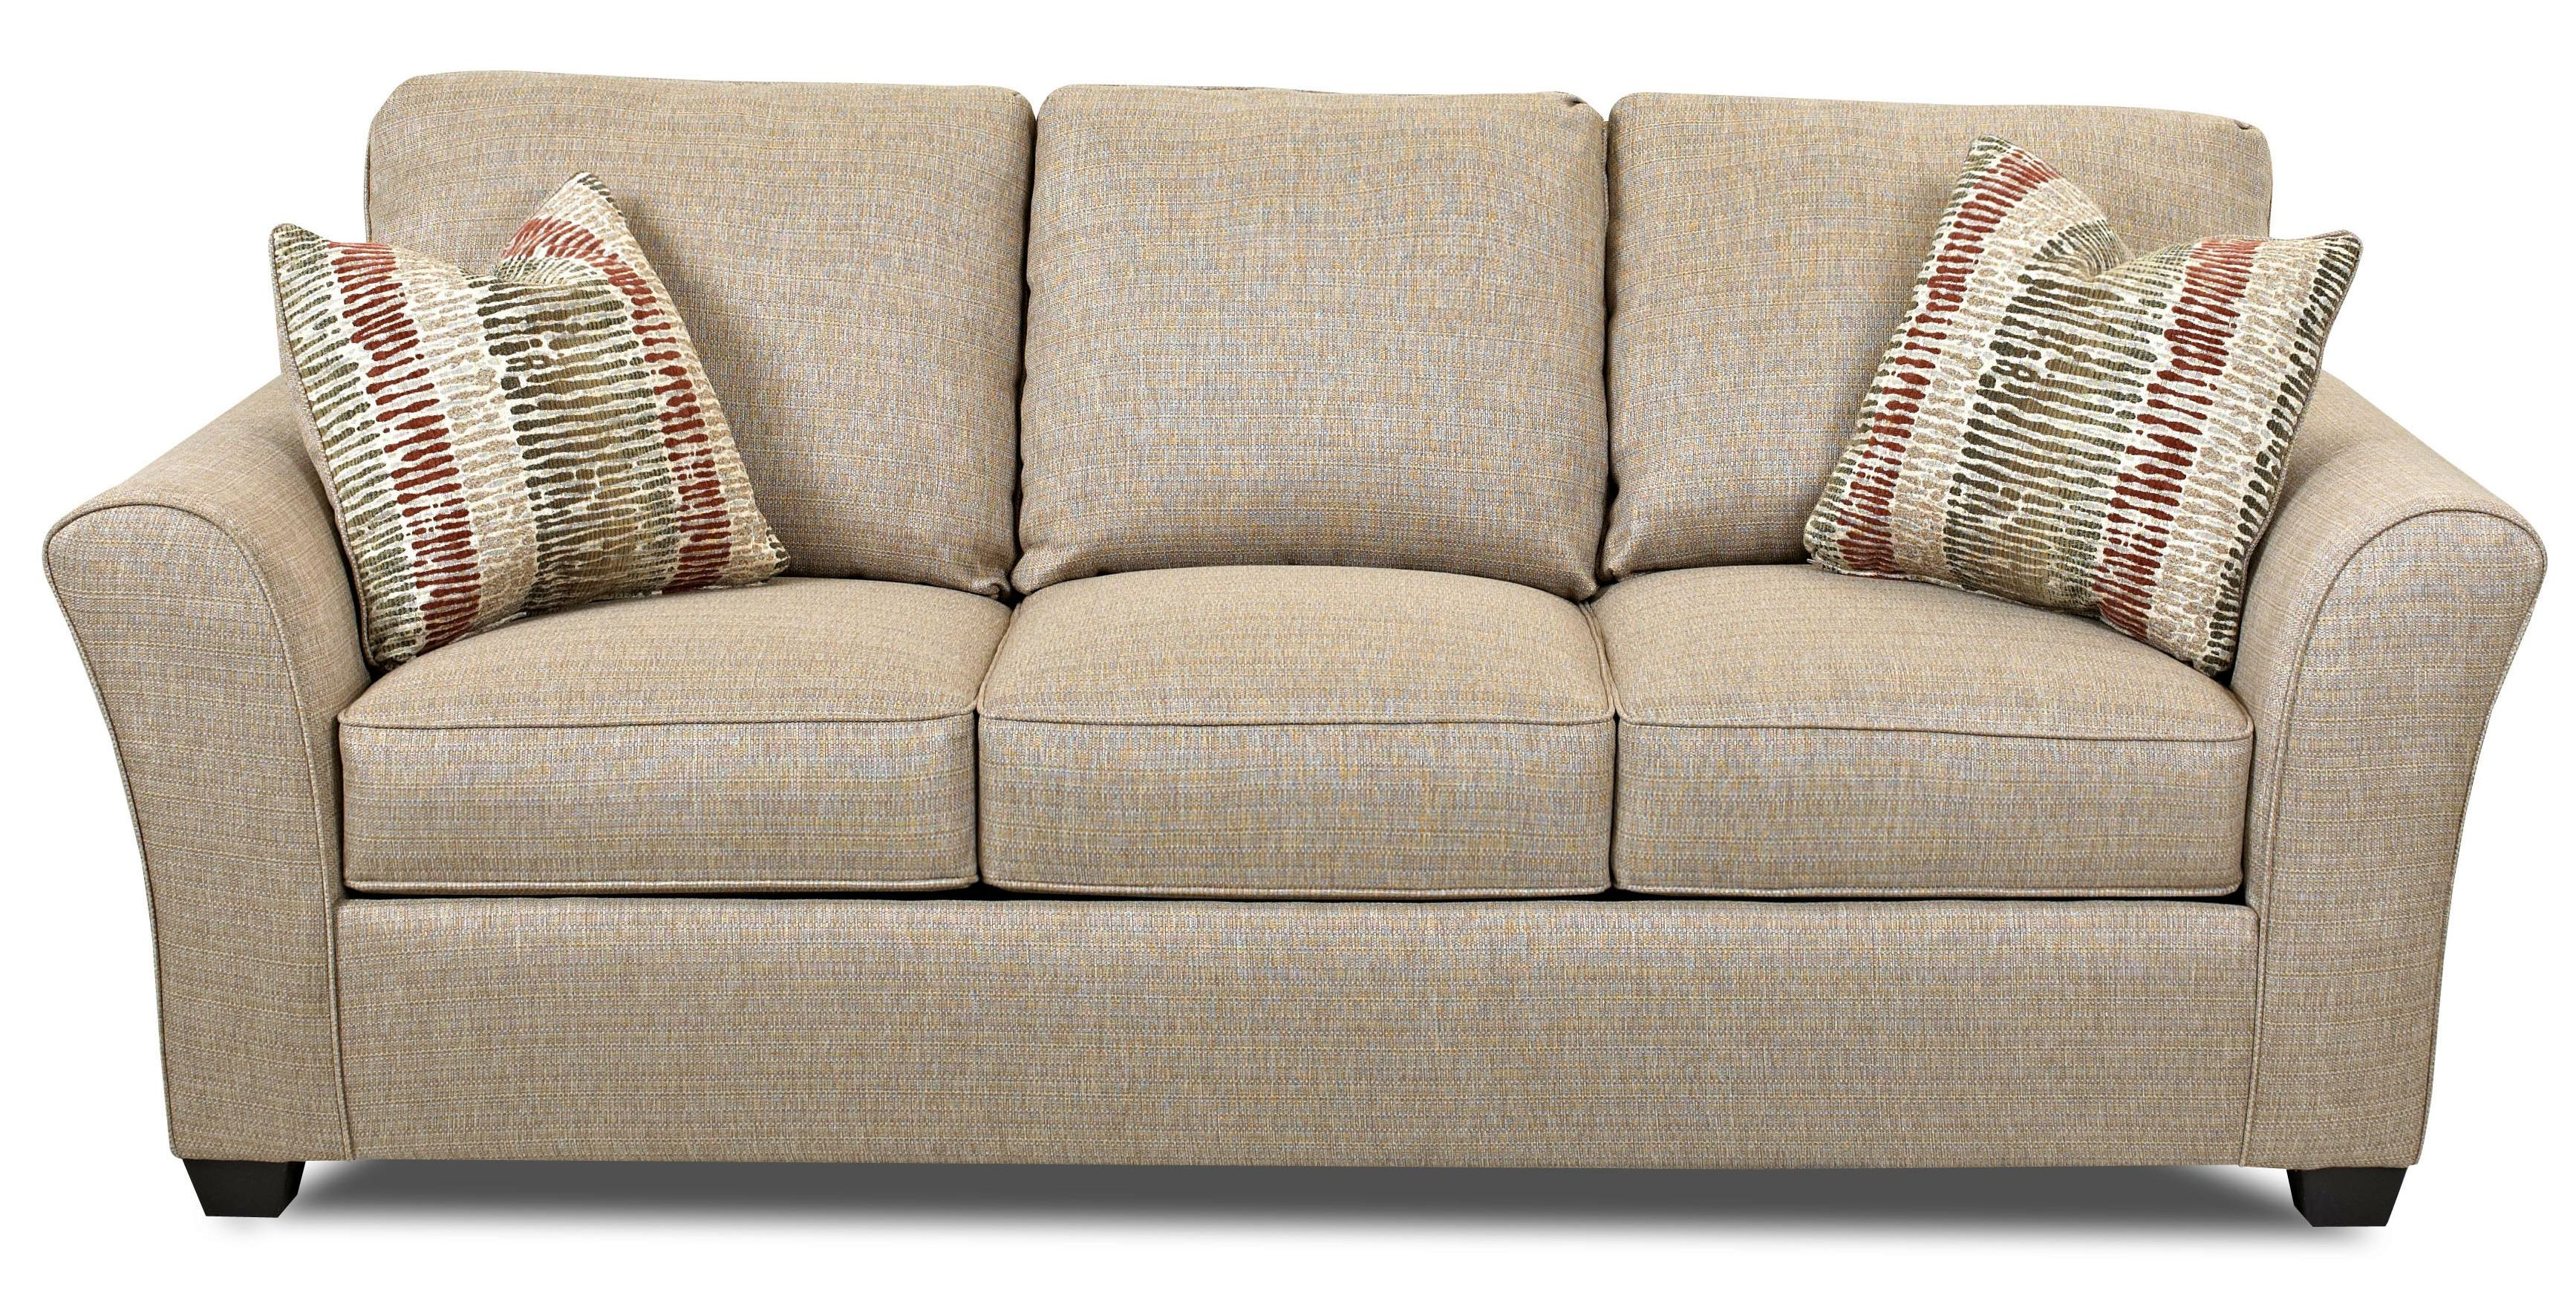 Transitional dreamquest queen sleeper sofa for Transitional sectional sofa sleeper